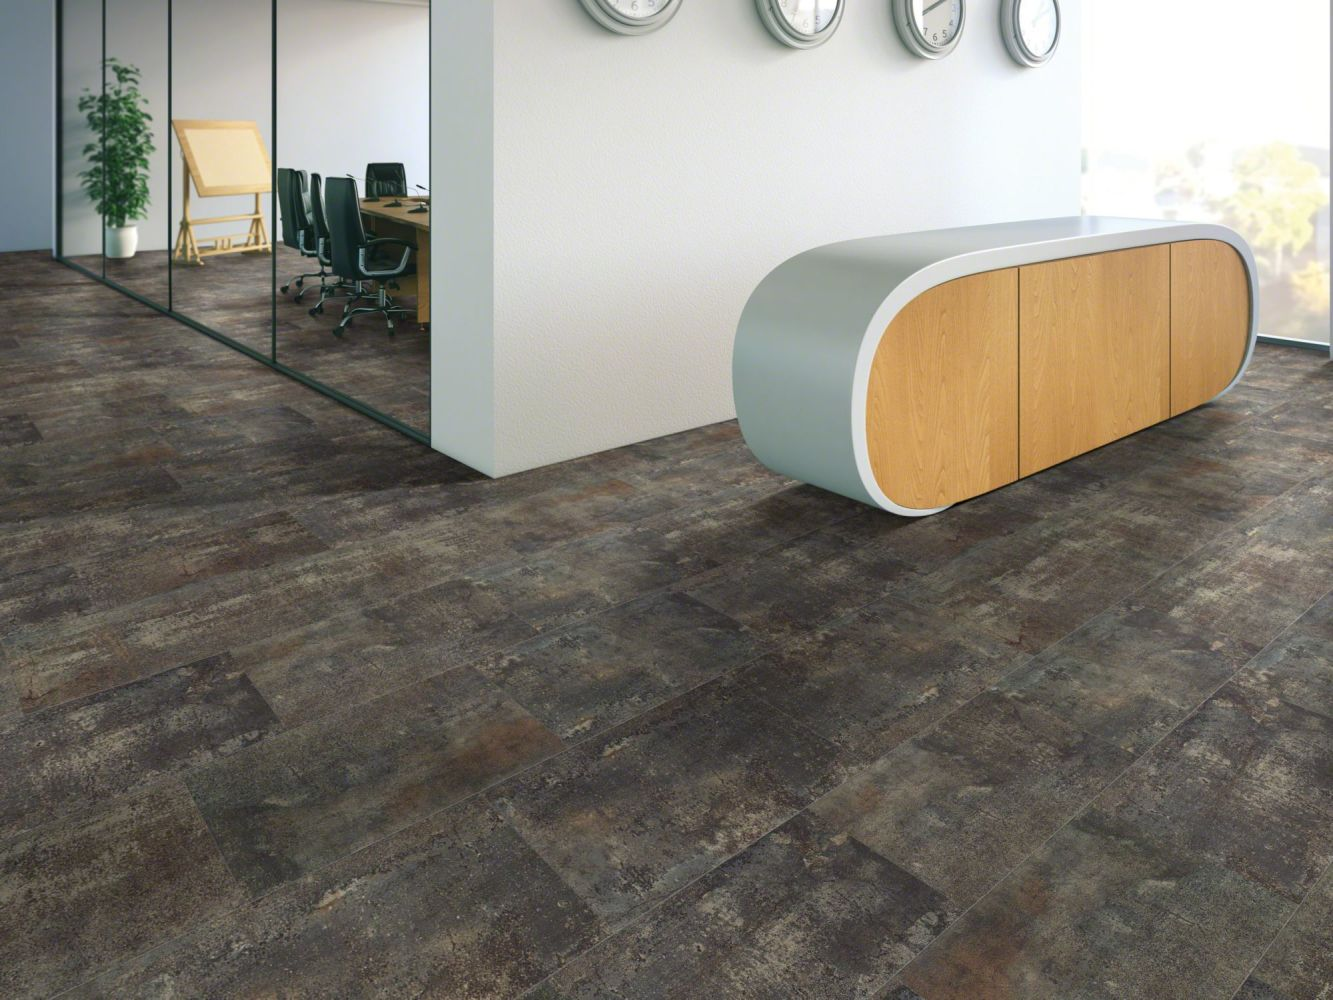 Shaw Floors Vinyl Residential Intrepid Tile Plus Ridge 00581_2026V